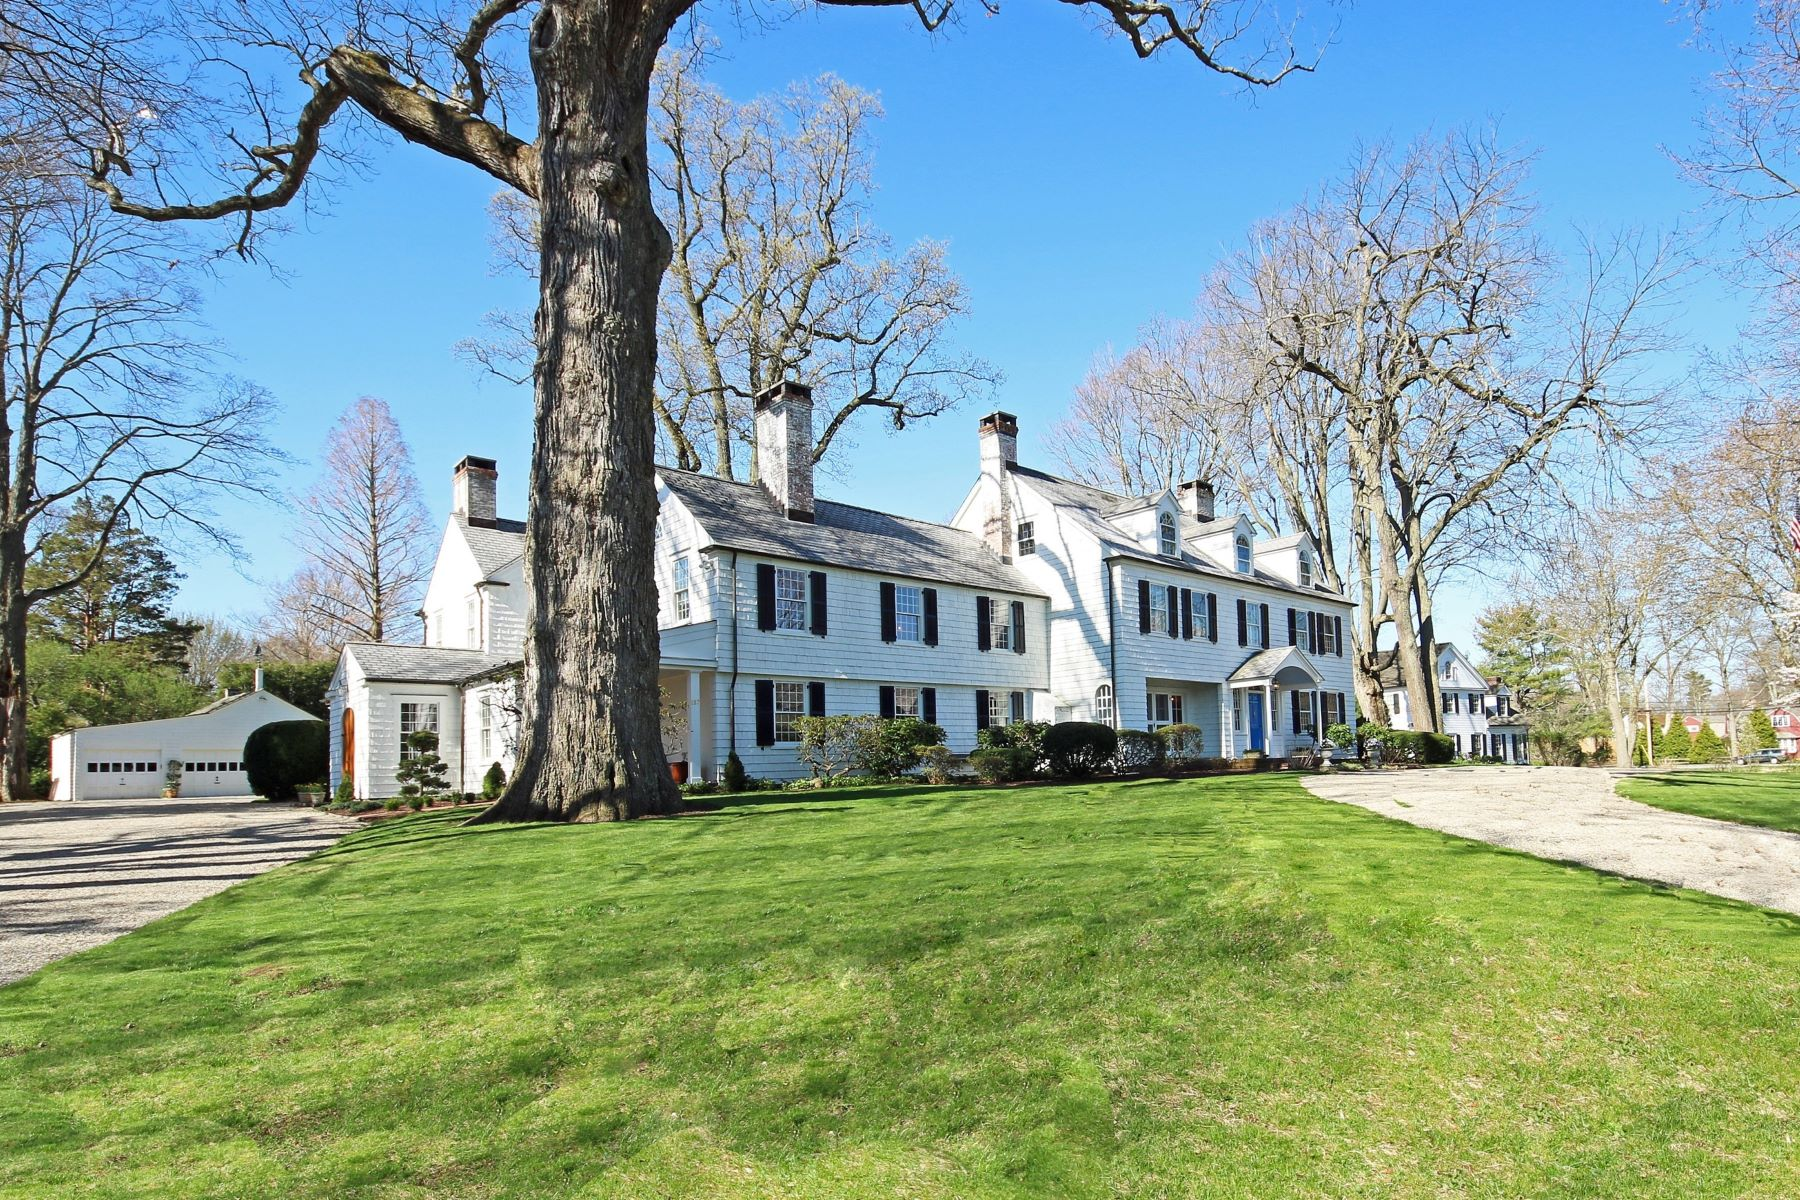 Casa Unifamiliar por un Venta en Exceptional Southport Landmark 187 Westway Road Fairfield, Connecticut 06890 Estados Unidos